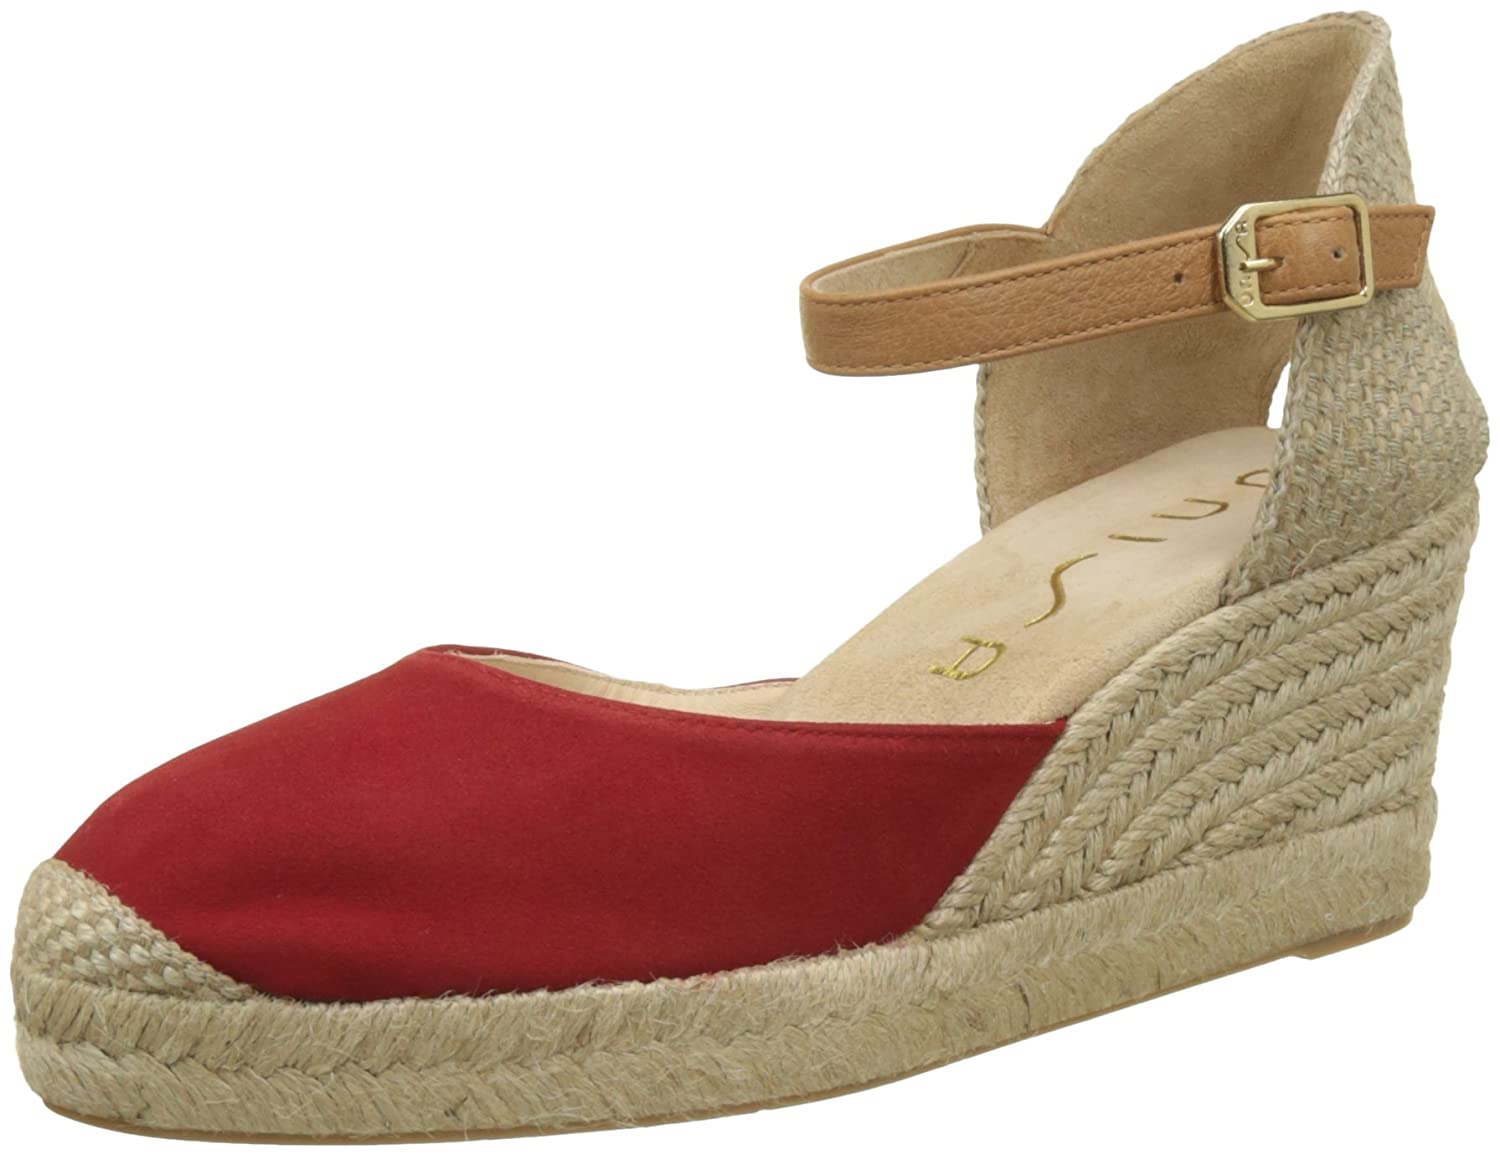 Unisa Caceres_18 Caceres_18_KS,_KS, Espadrilles B0743CQ7MF Femme Rouge (Red) (Red) 9751f9f - fast-weightloss-diet.space